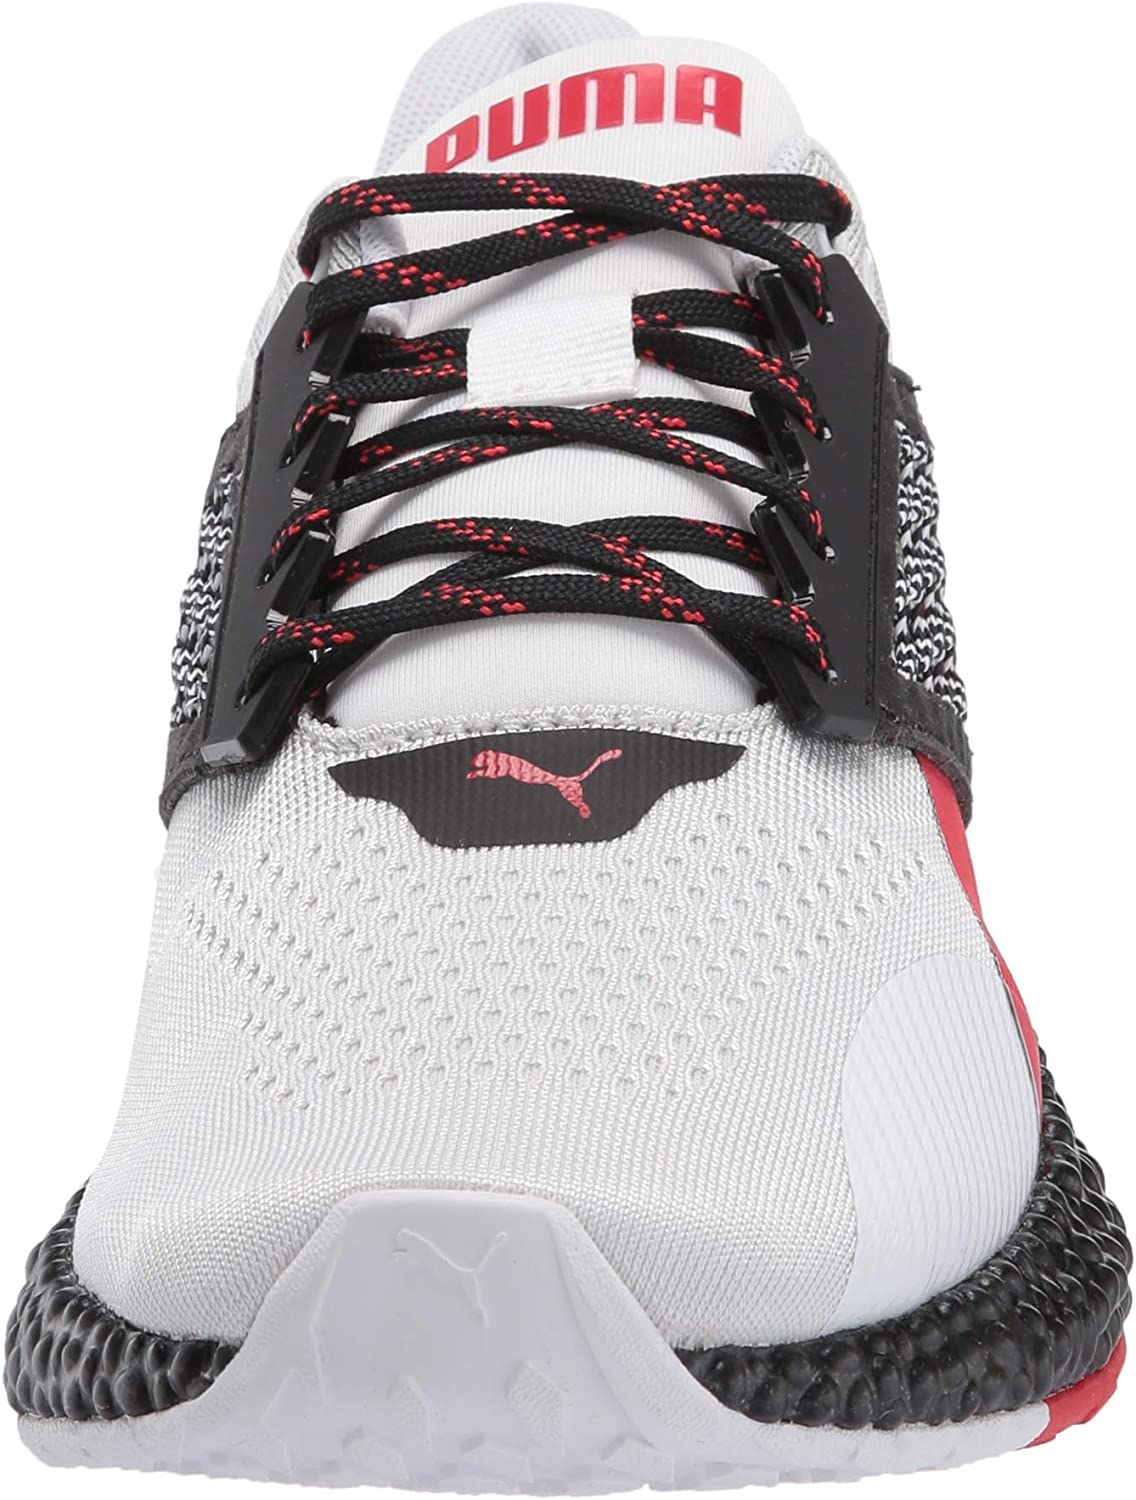 PUMA Men's Hybrid Astro Sneaker Puma White-puma Black-high Risk Red